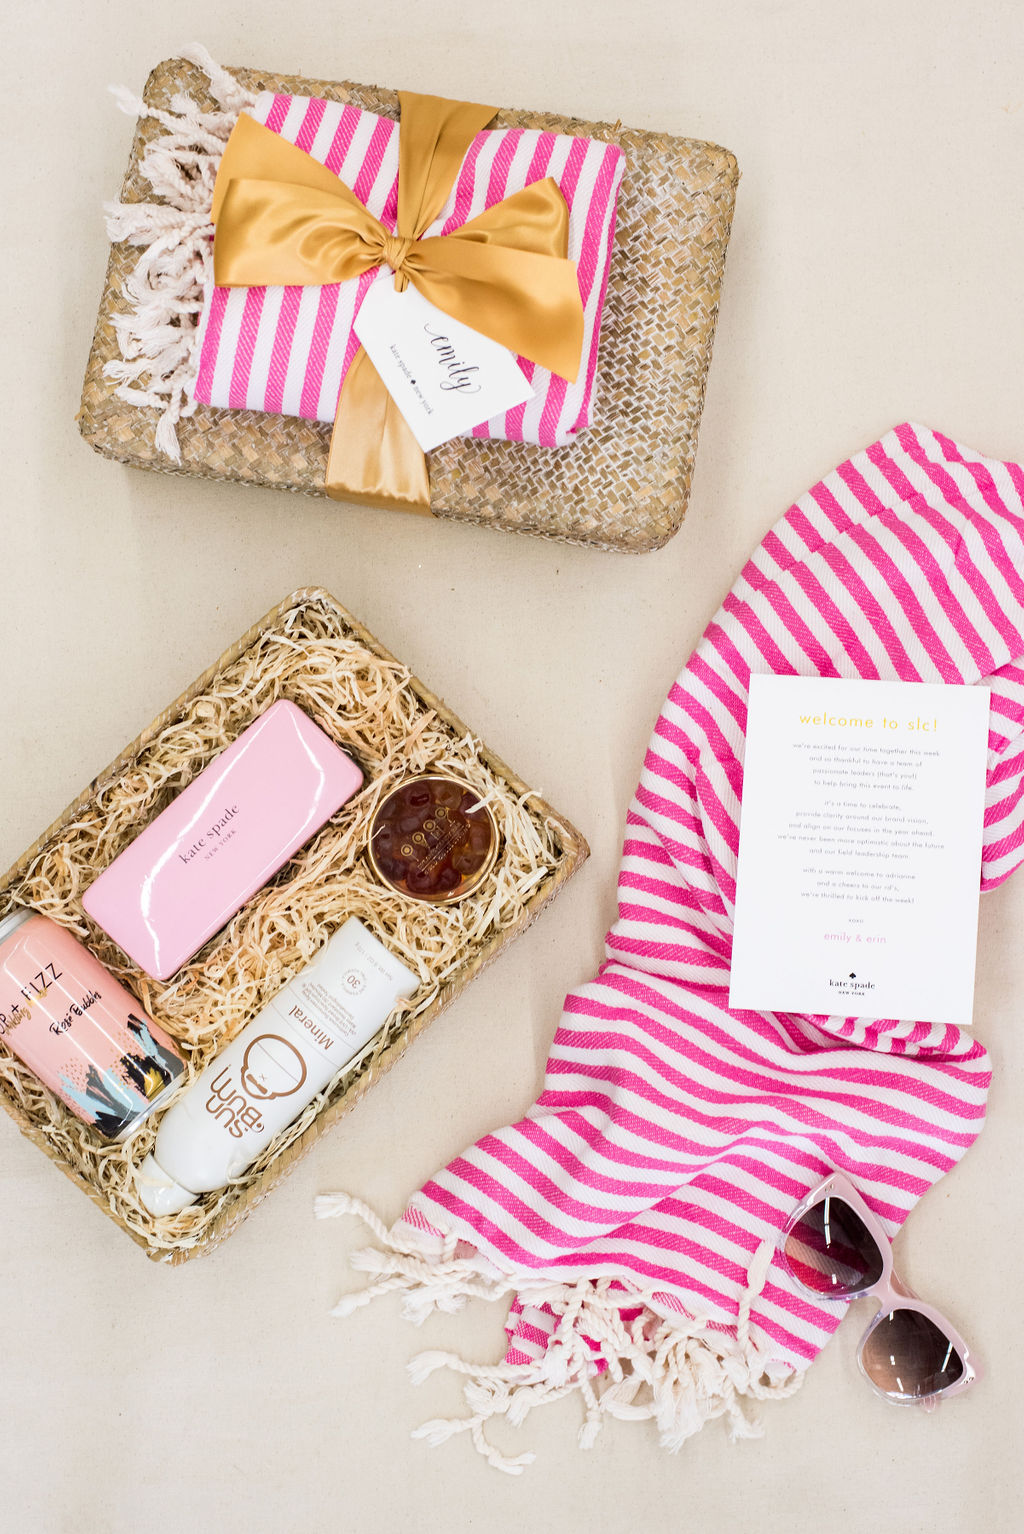 Kate Spade New York corporate welcome gifts